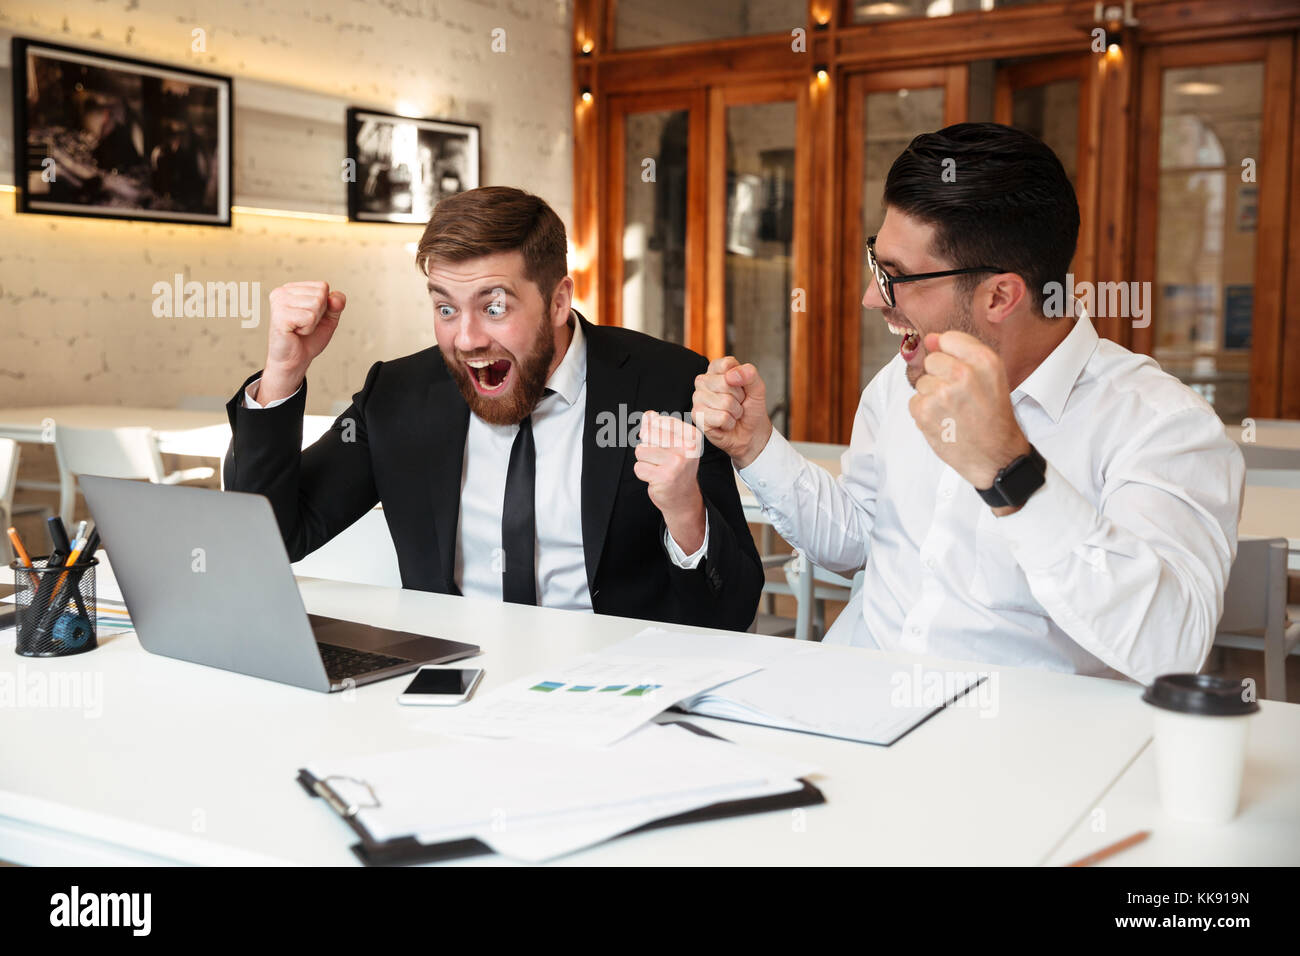 Two successful employees looking at a computer monitor on the table while expressing their achievement in the office - Stock Image